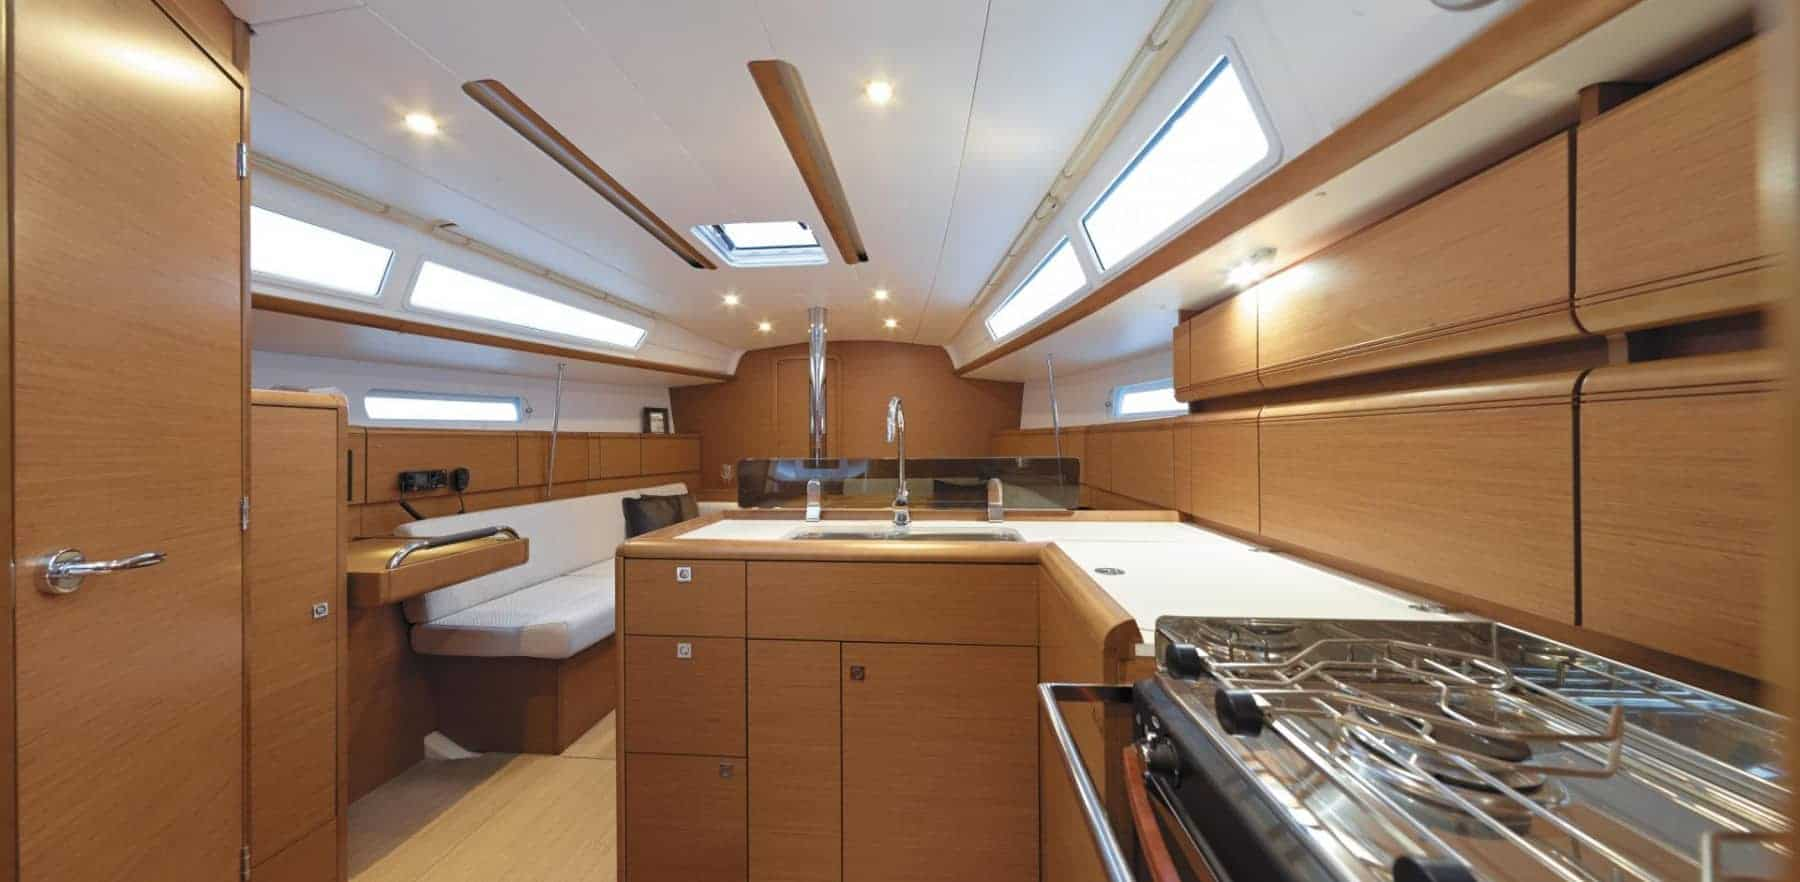 View from the galley showing the whole hull and saloon of the beautiful Jeanneau Sun Odyssey 389